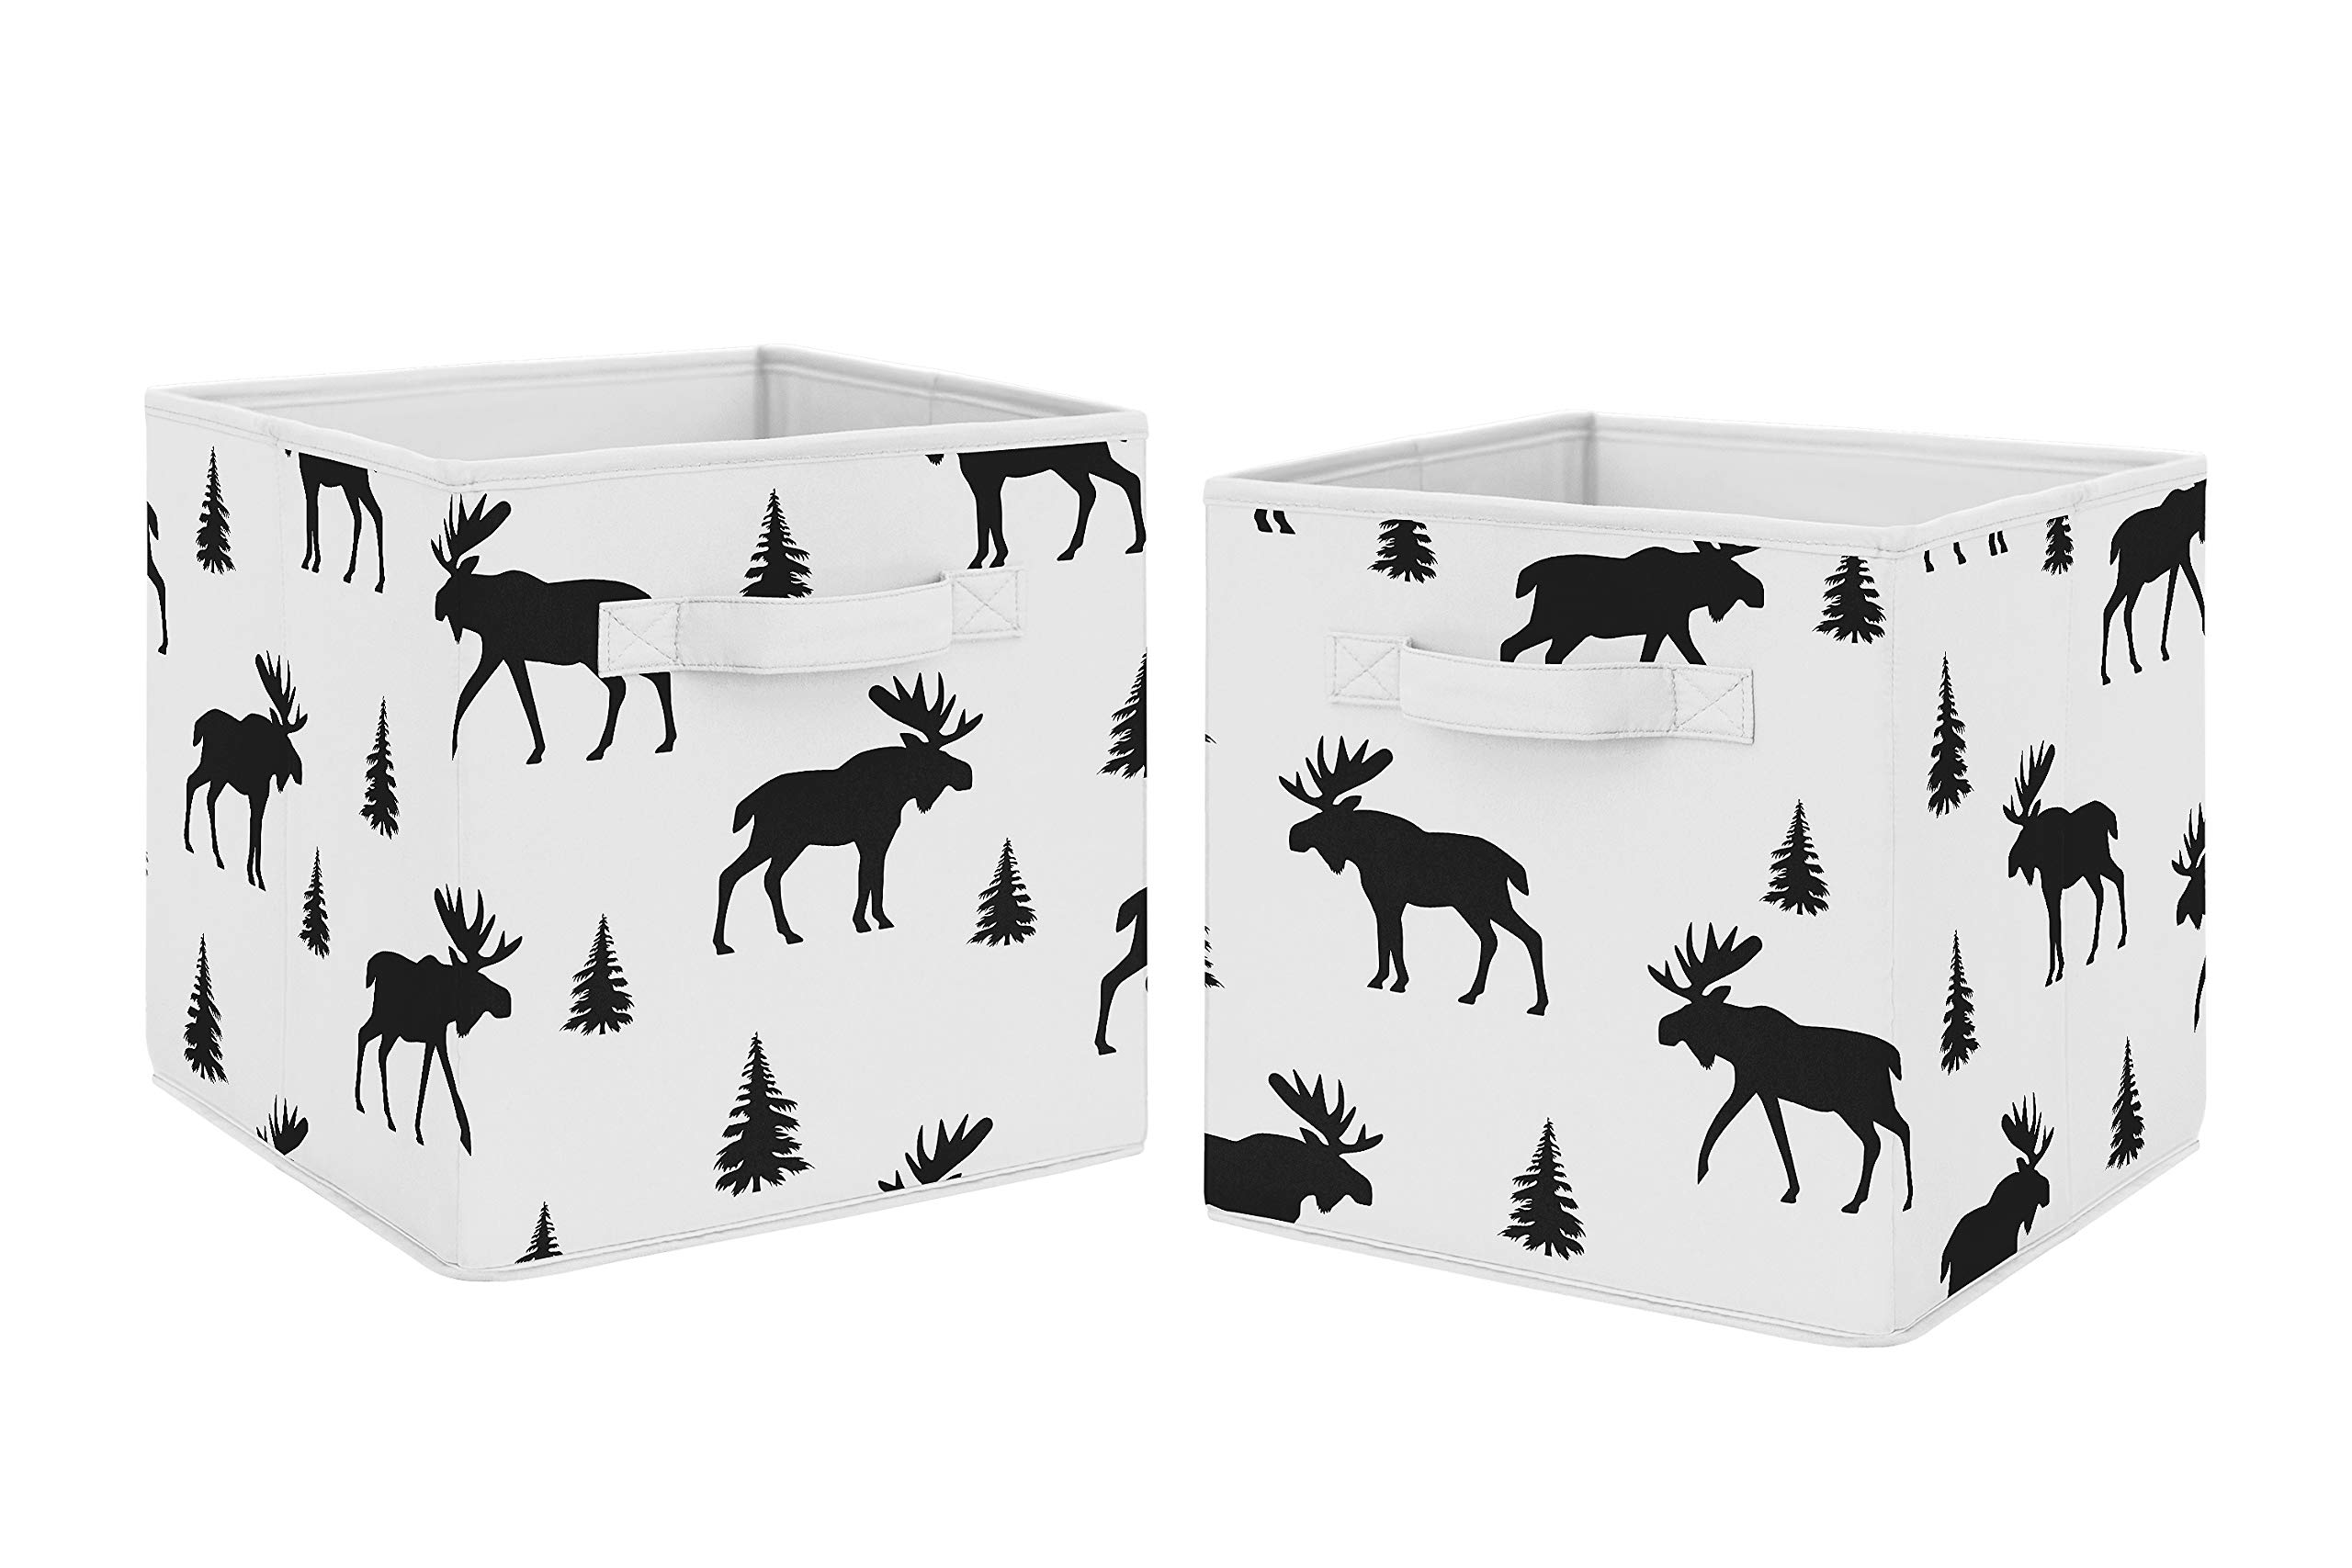 Sweet Jojo Designs Black and White Woodland Moose Organizer Storage Bins for Rustic Patch Collection - Set of 2 by Sweet Jojo Designs